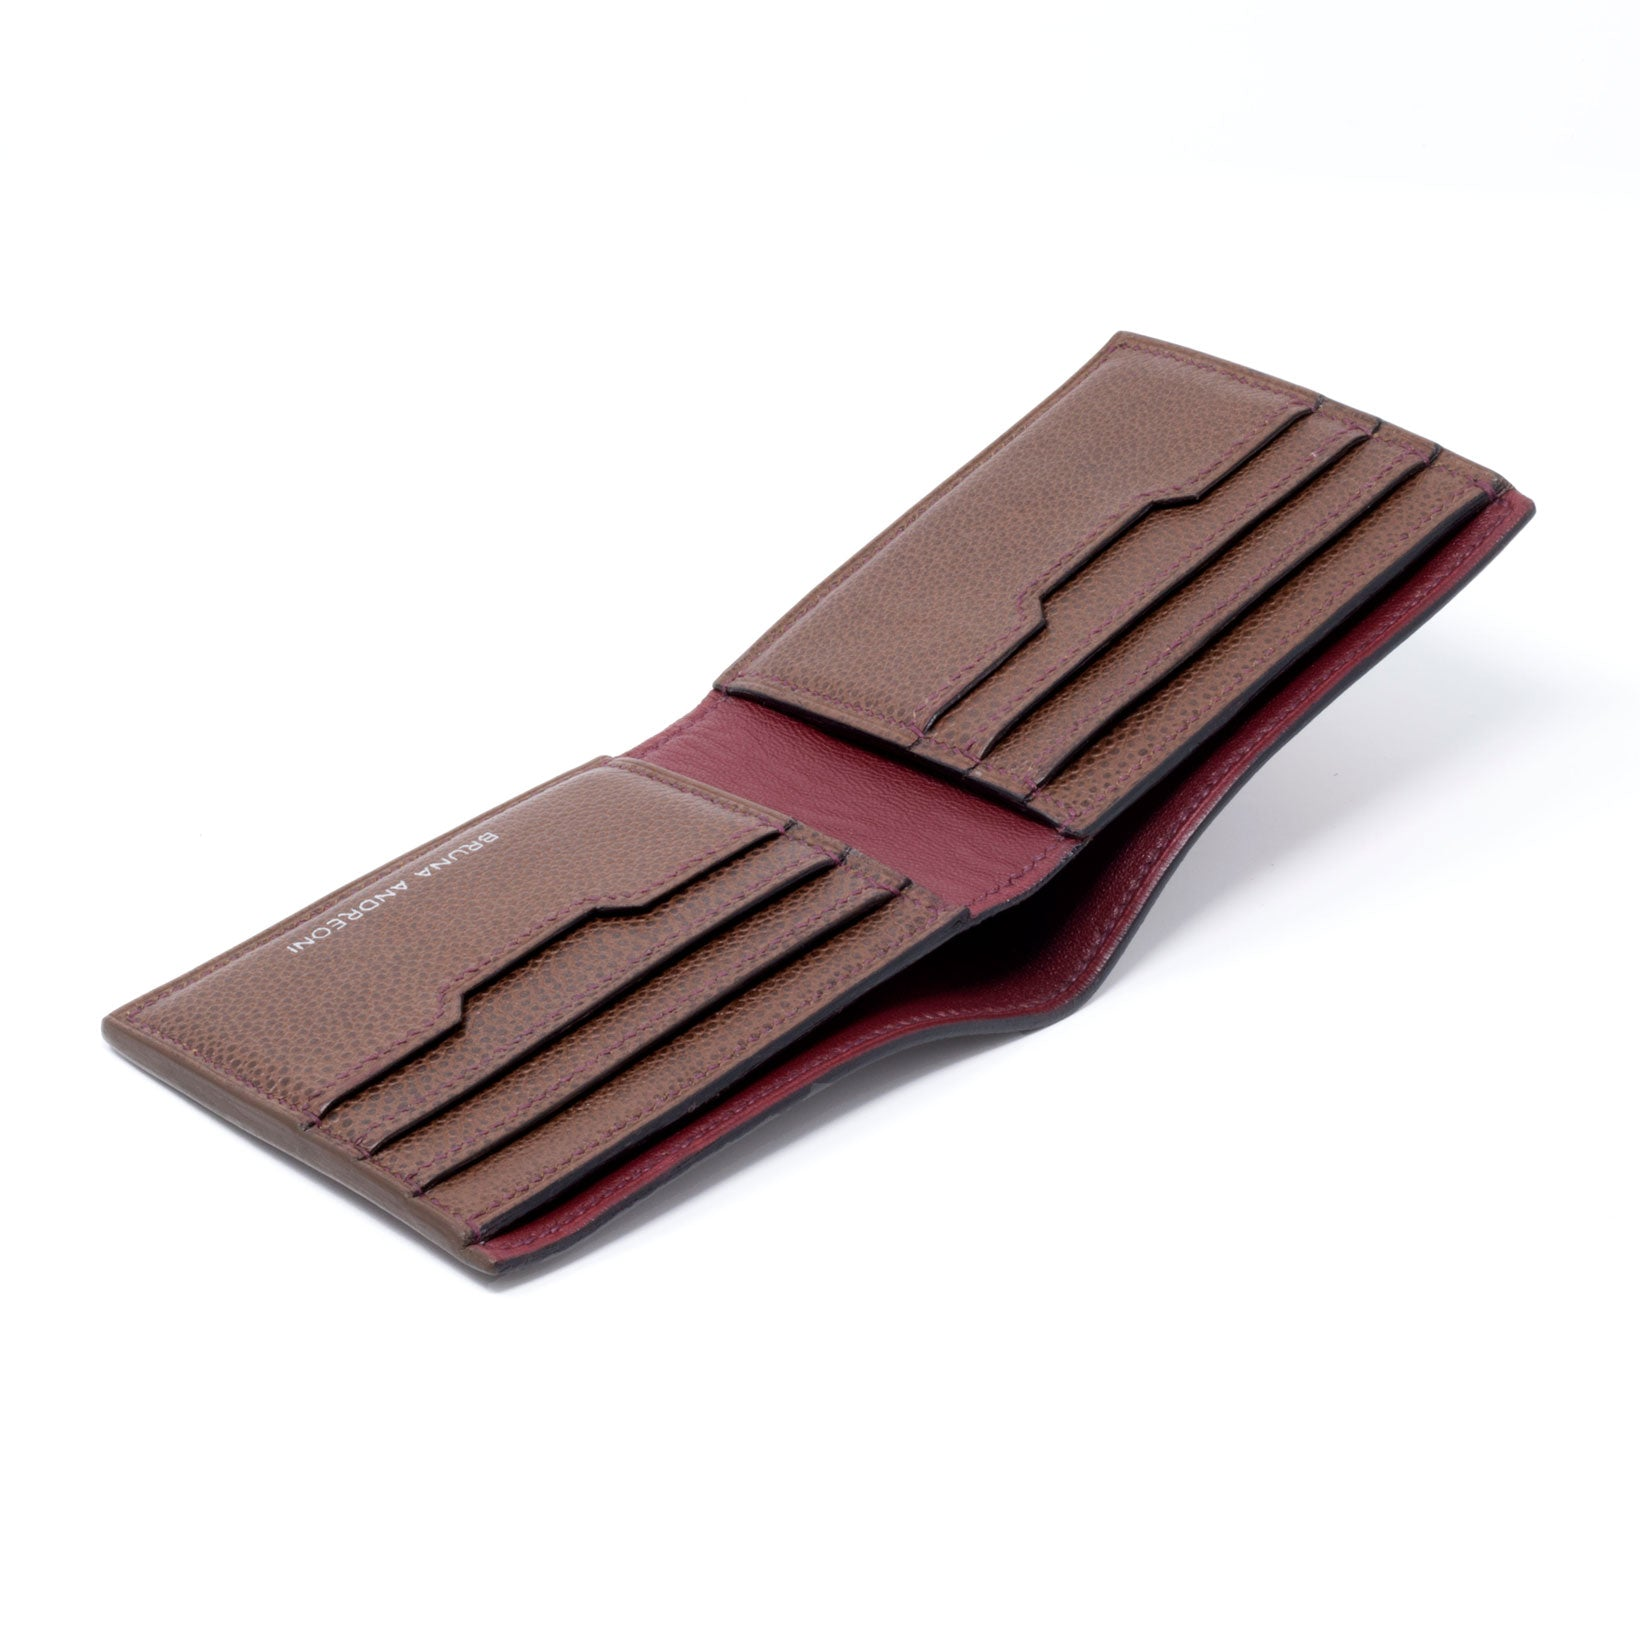 Chestnut Grain Taurillon Havemayer Bi-Fold Wallet handmade by Bruna Andreoni